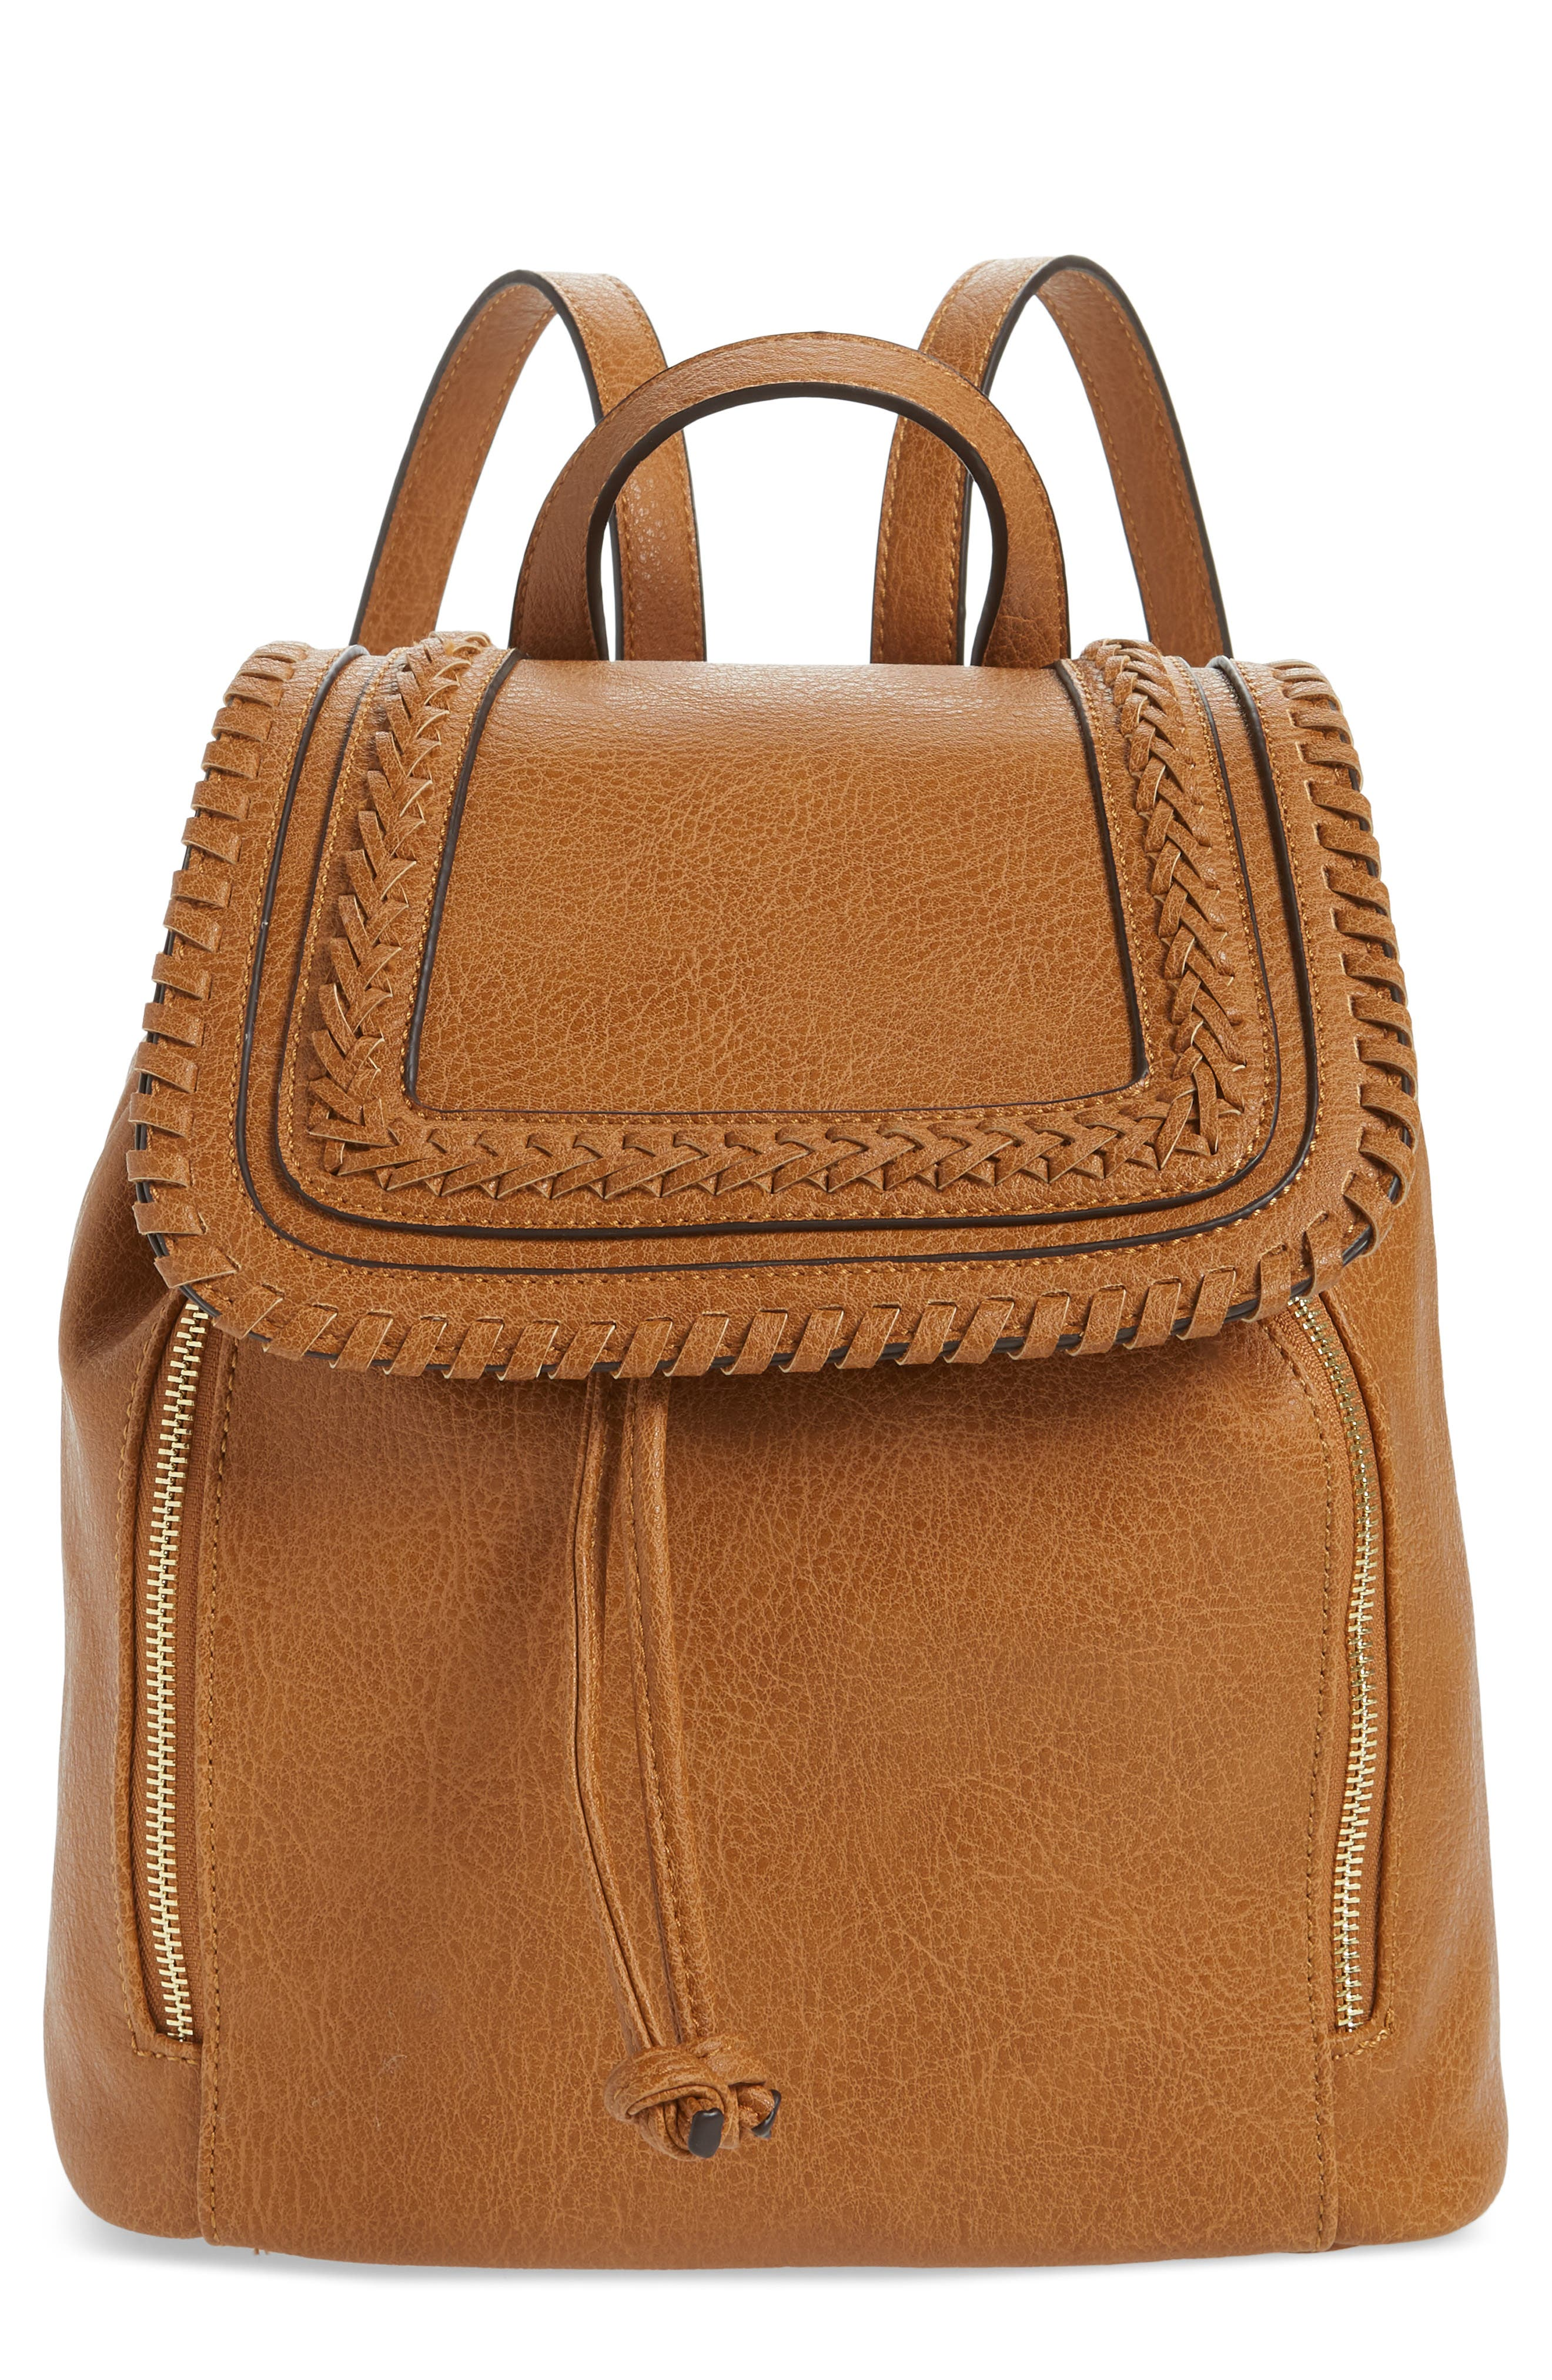 Sole Society Destin Faux Leather Backpack - Brown